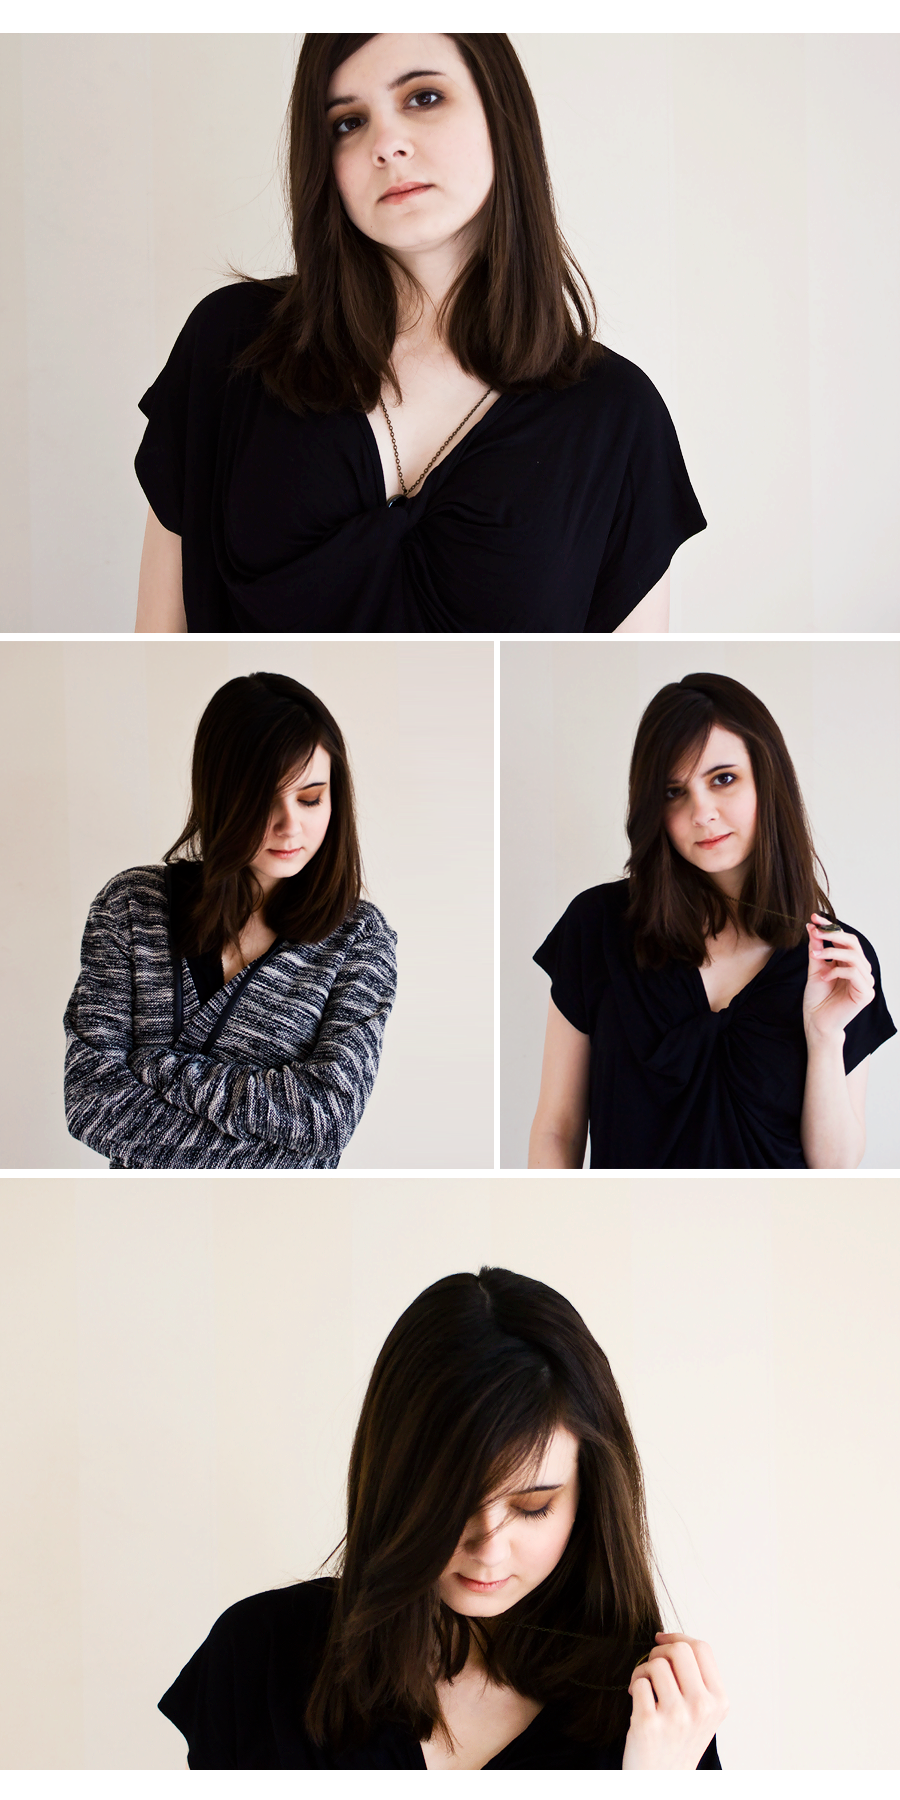 20150205-collage-headshot